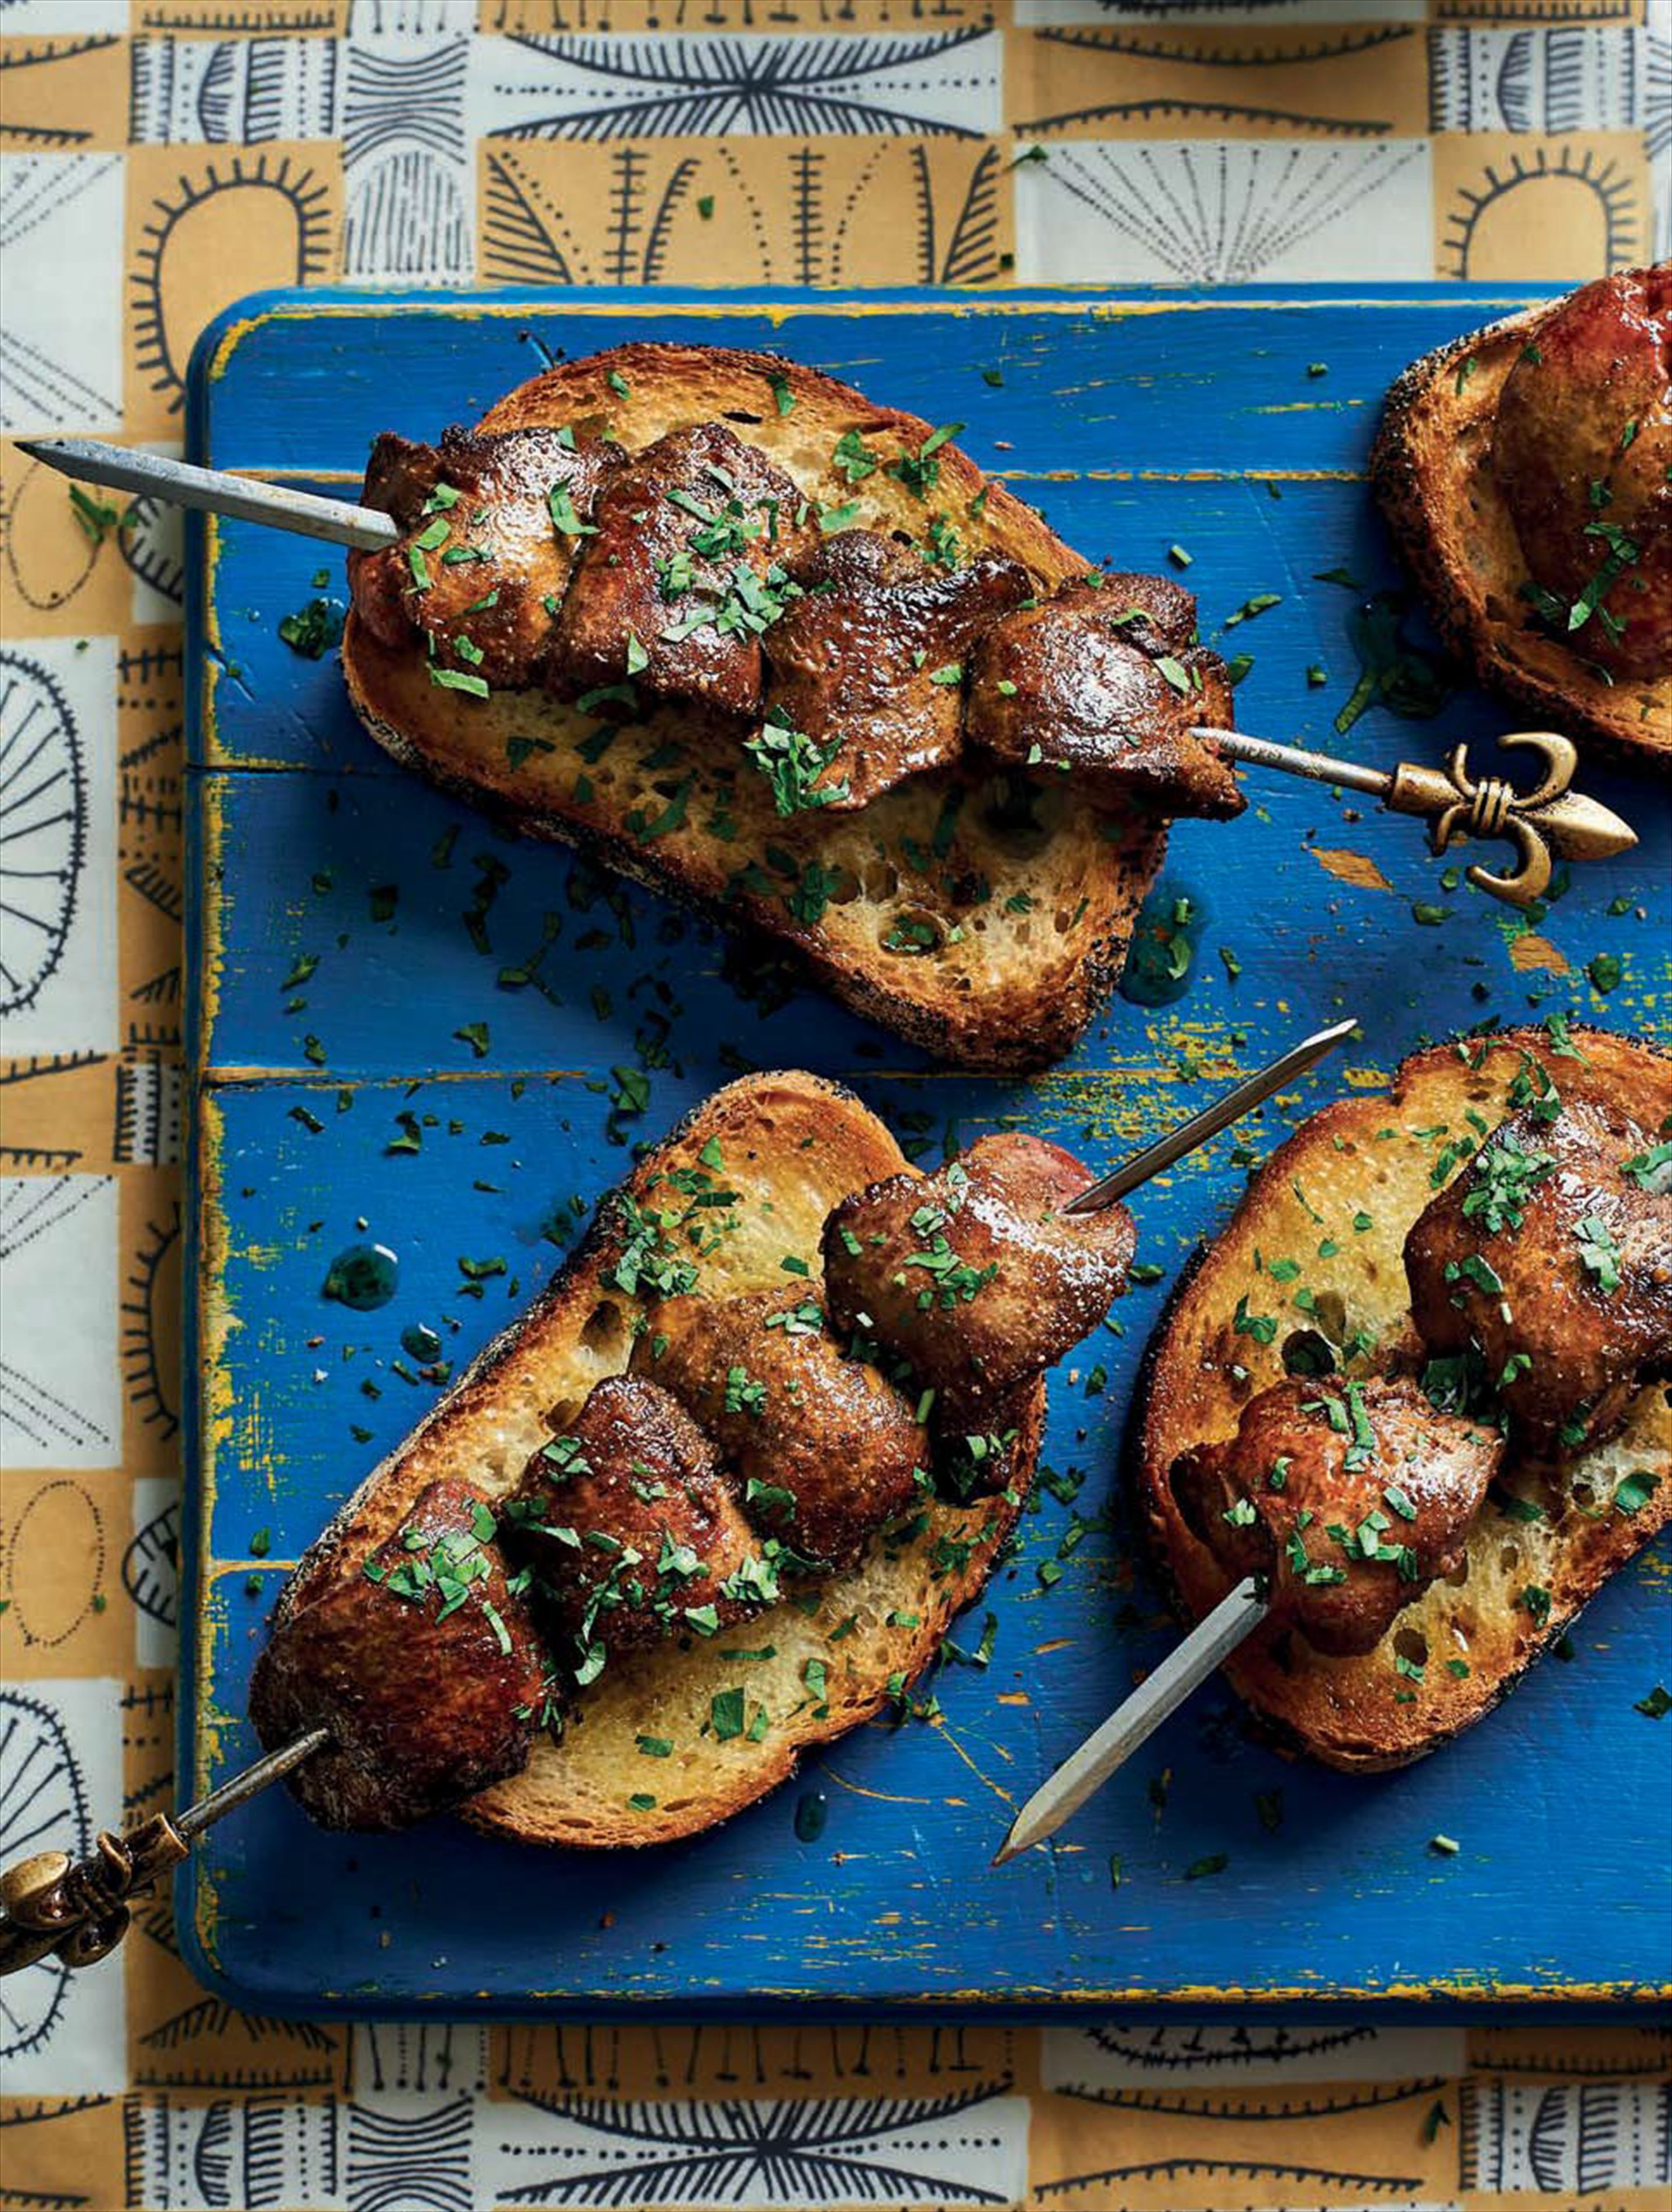 Chicken liver en brochette